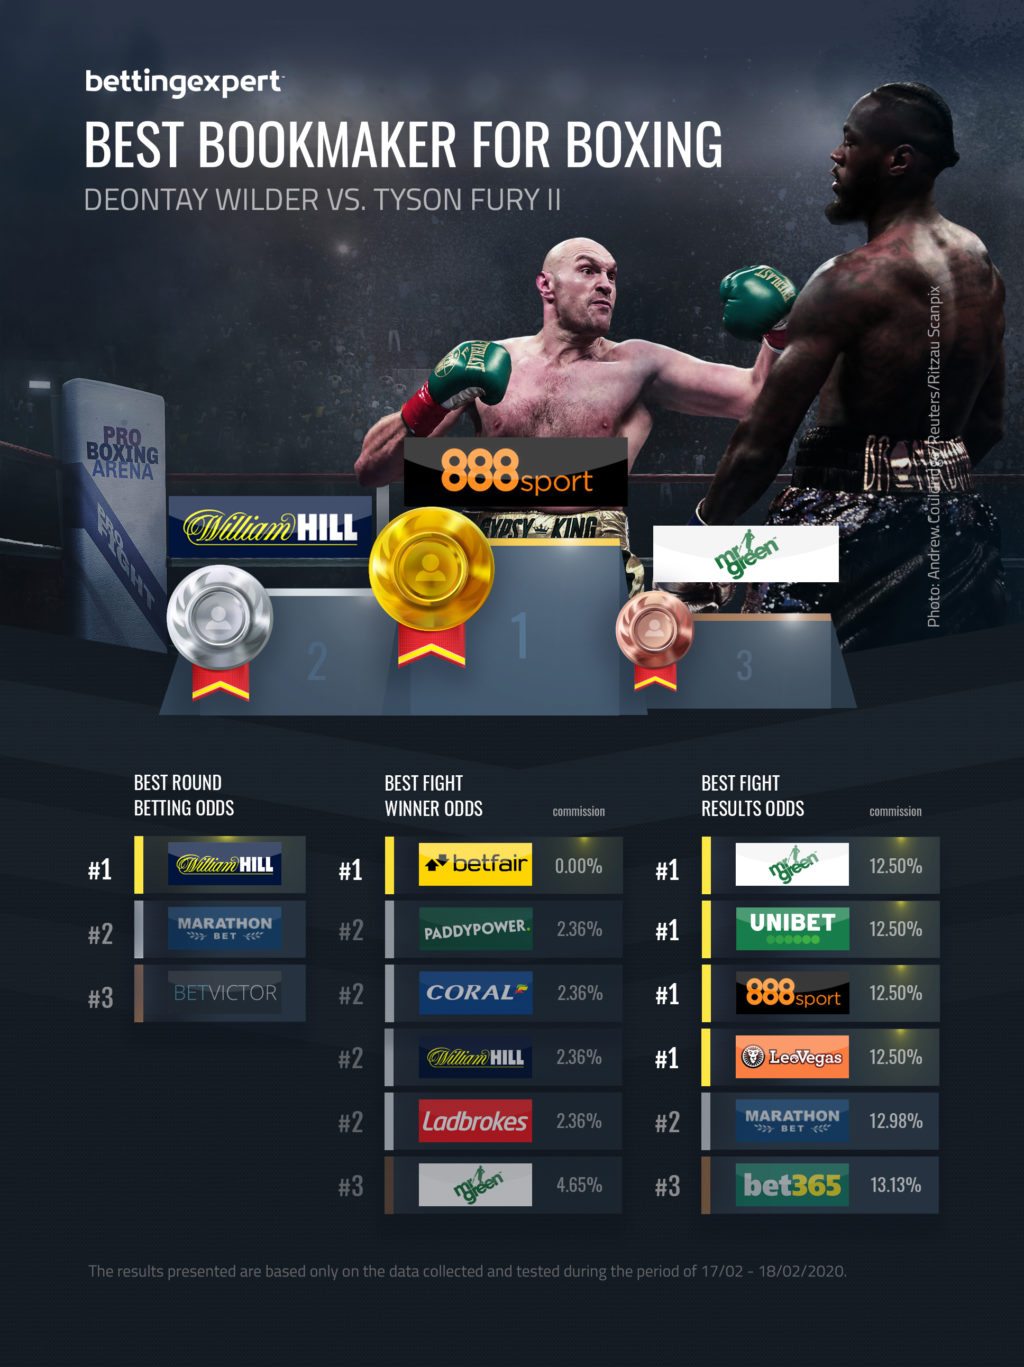 Best Bookmaker For Boxing